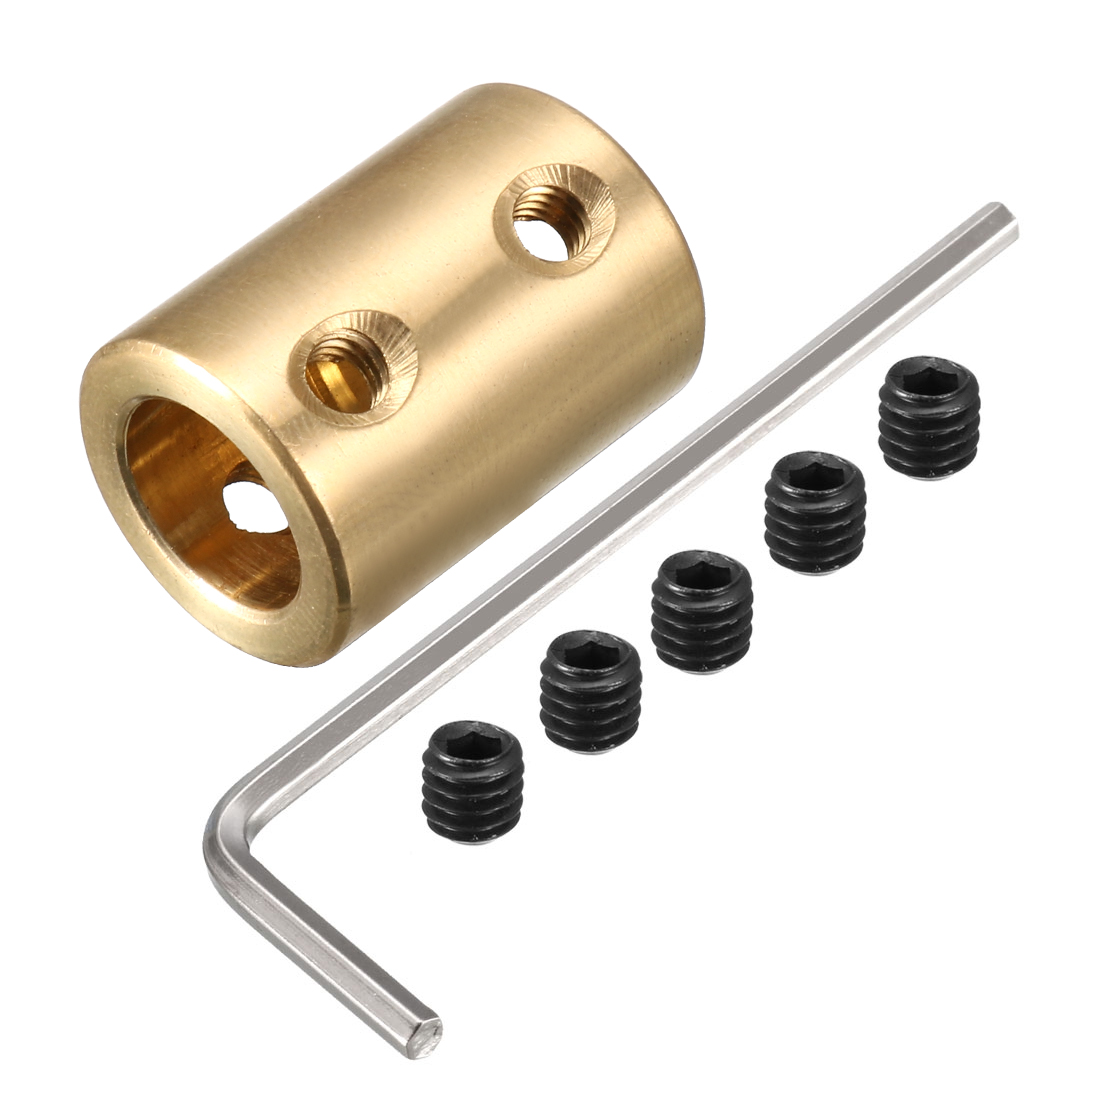 8mm to 10mm Copper DIY Motor Shaft Coupling Joint Adapter for Electric Car Toy